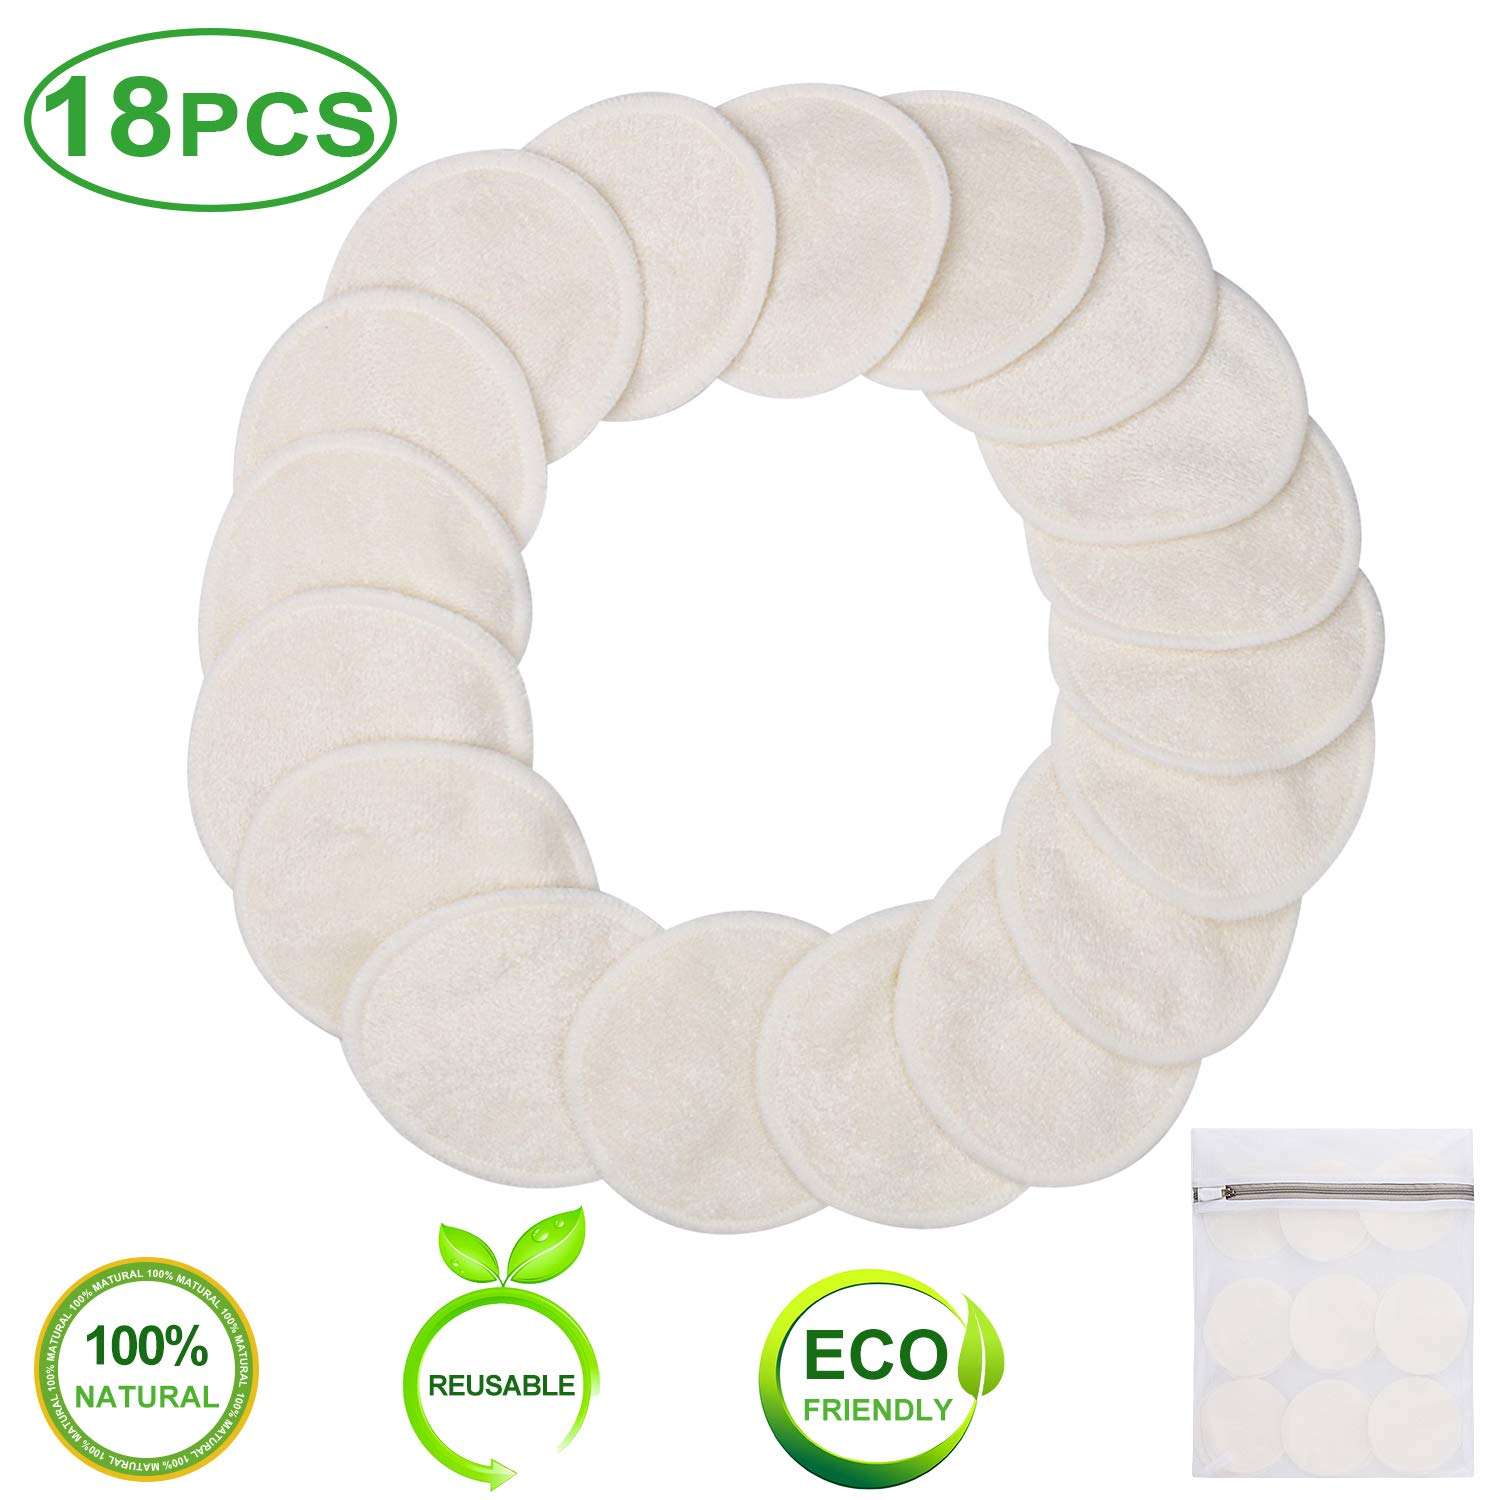 Reusable Makeup Remover Pads -18 Packs Washable Organic Cotton Rounds - Soft Natural Bamboo Face Pads - 2 Layers Facial Pads Cleansing Wipe Cloth with Laundry Bag (Bamboo Velour)